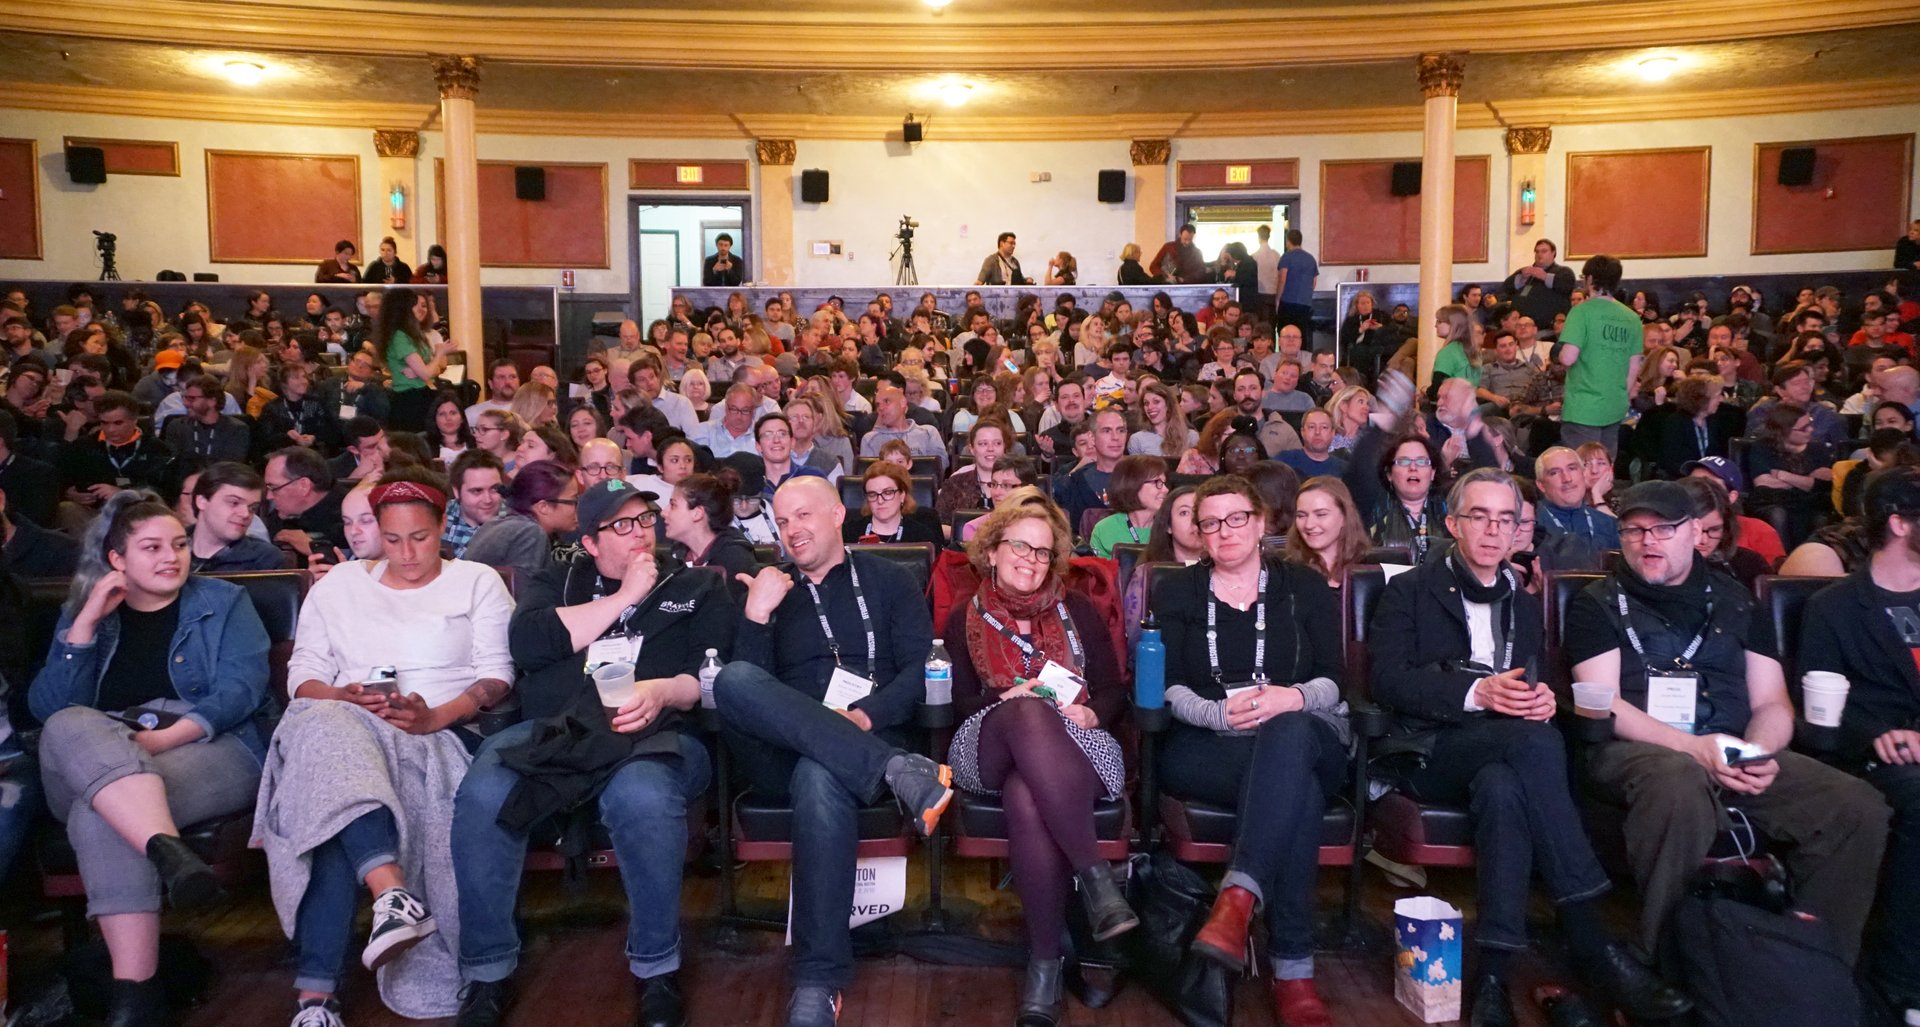 Best time for Independent Film Festival Boston (IFFBoston) in Boston 2020